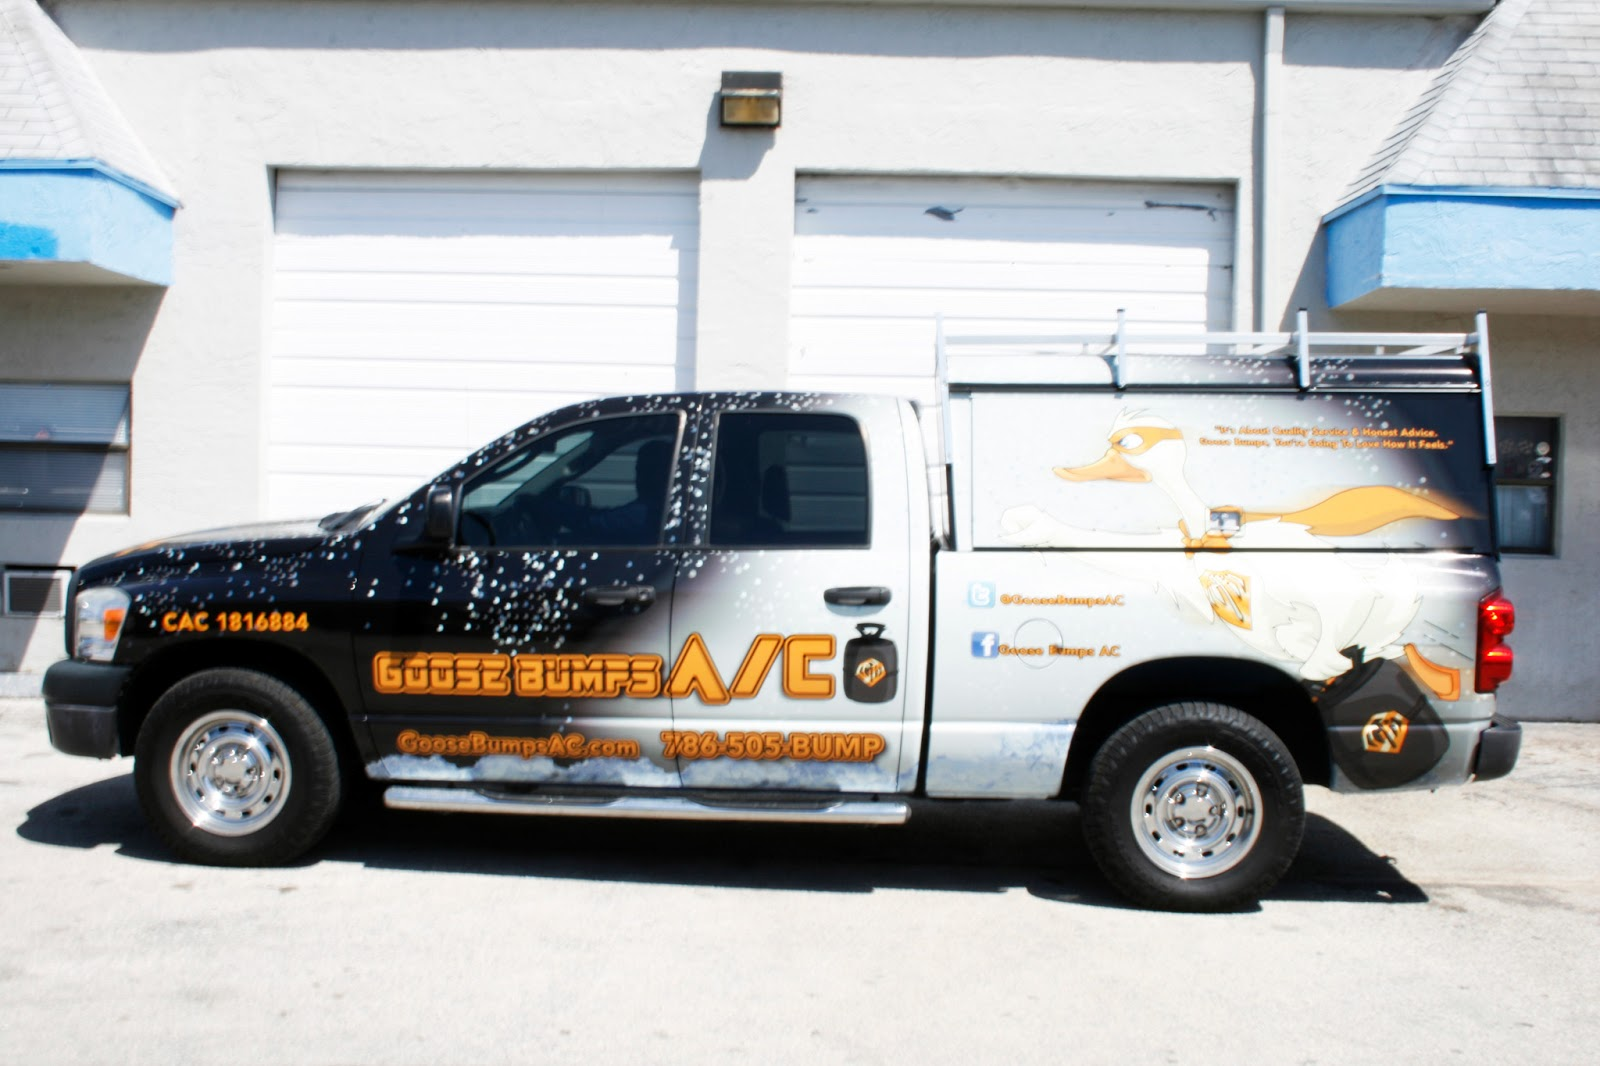 Ram Air Conditioning West Palm Beach